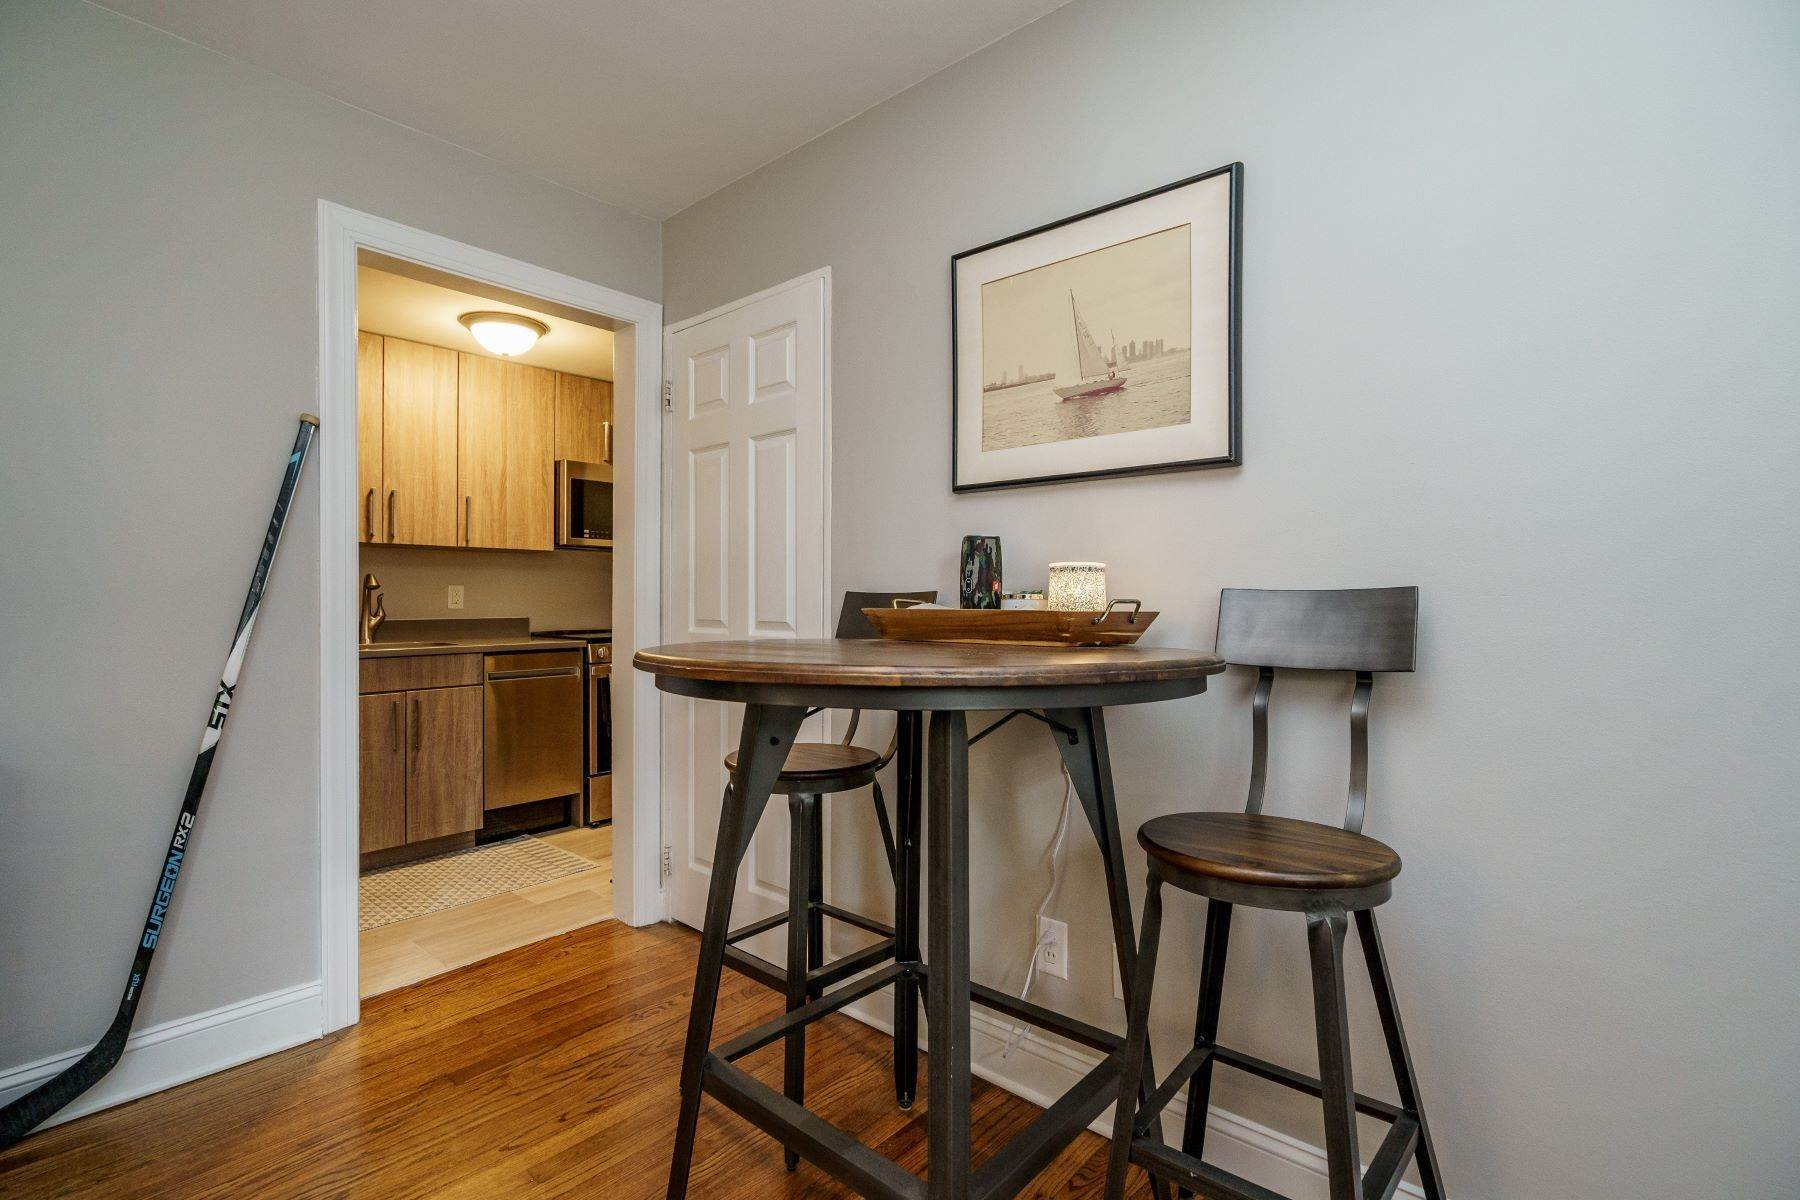 5. Condominiums for Sale at 979 St. Mary's St Unit A Raleigh, North Carolina 27605 United States